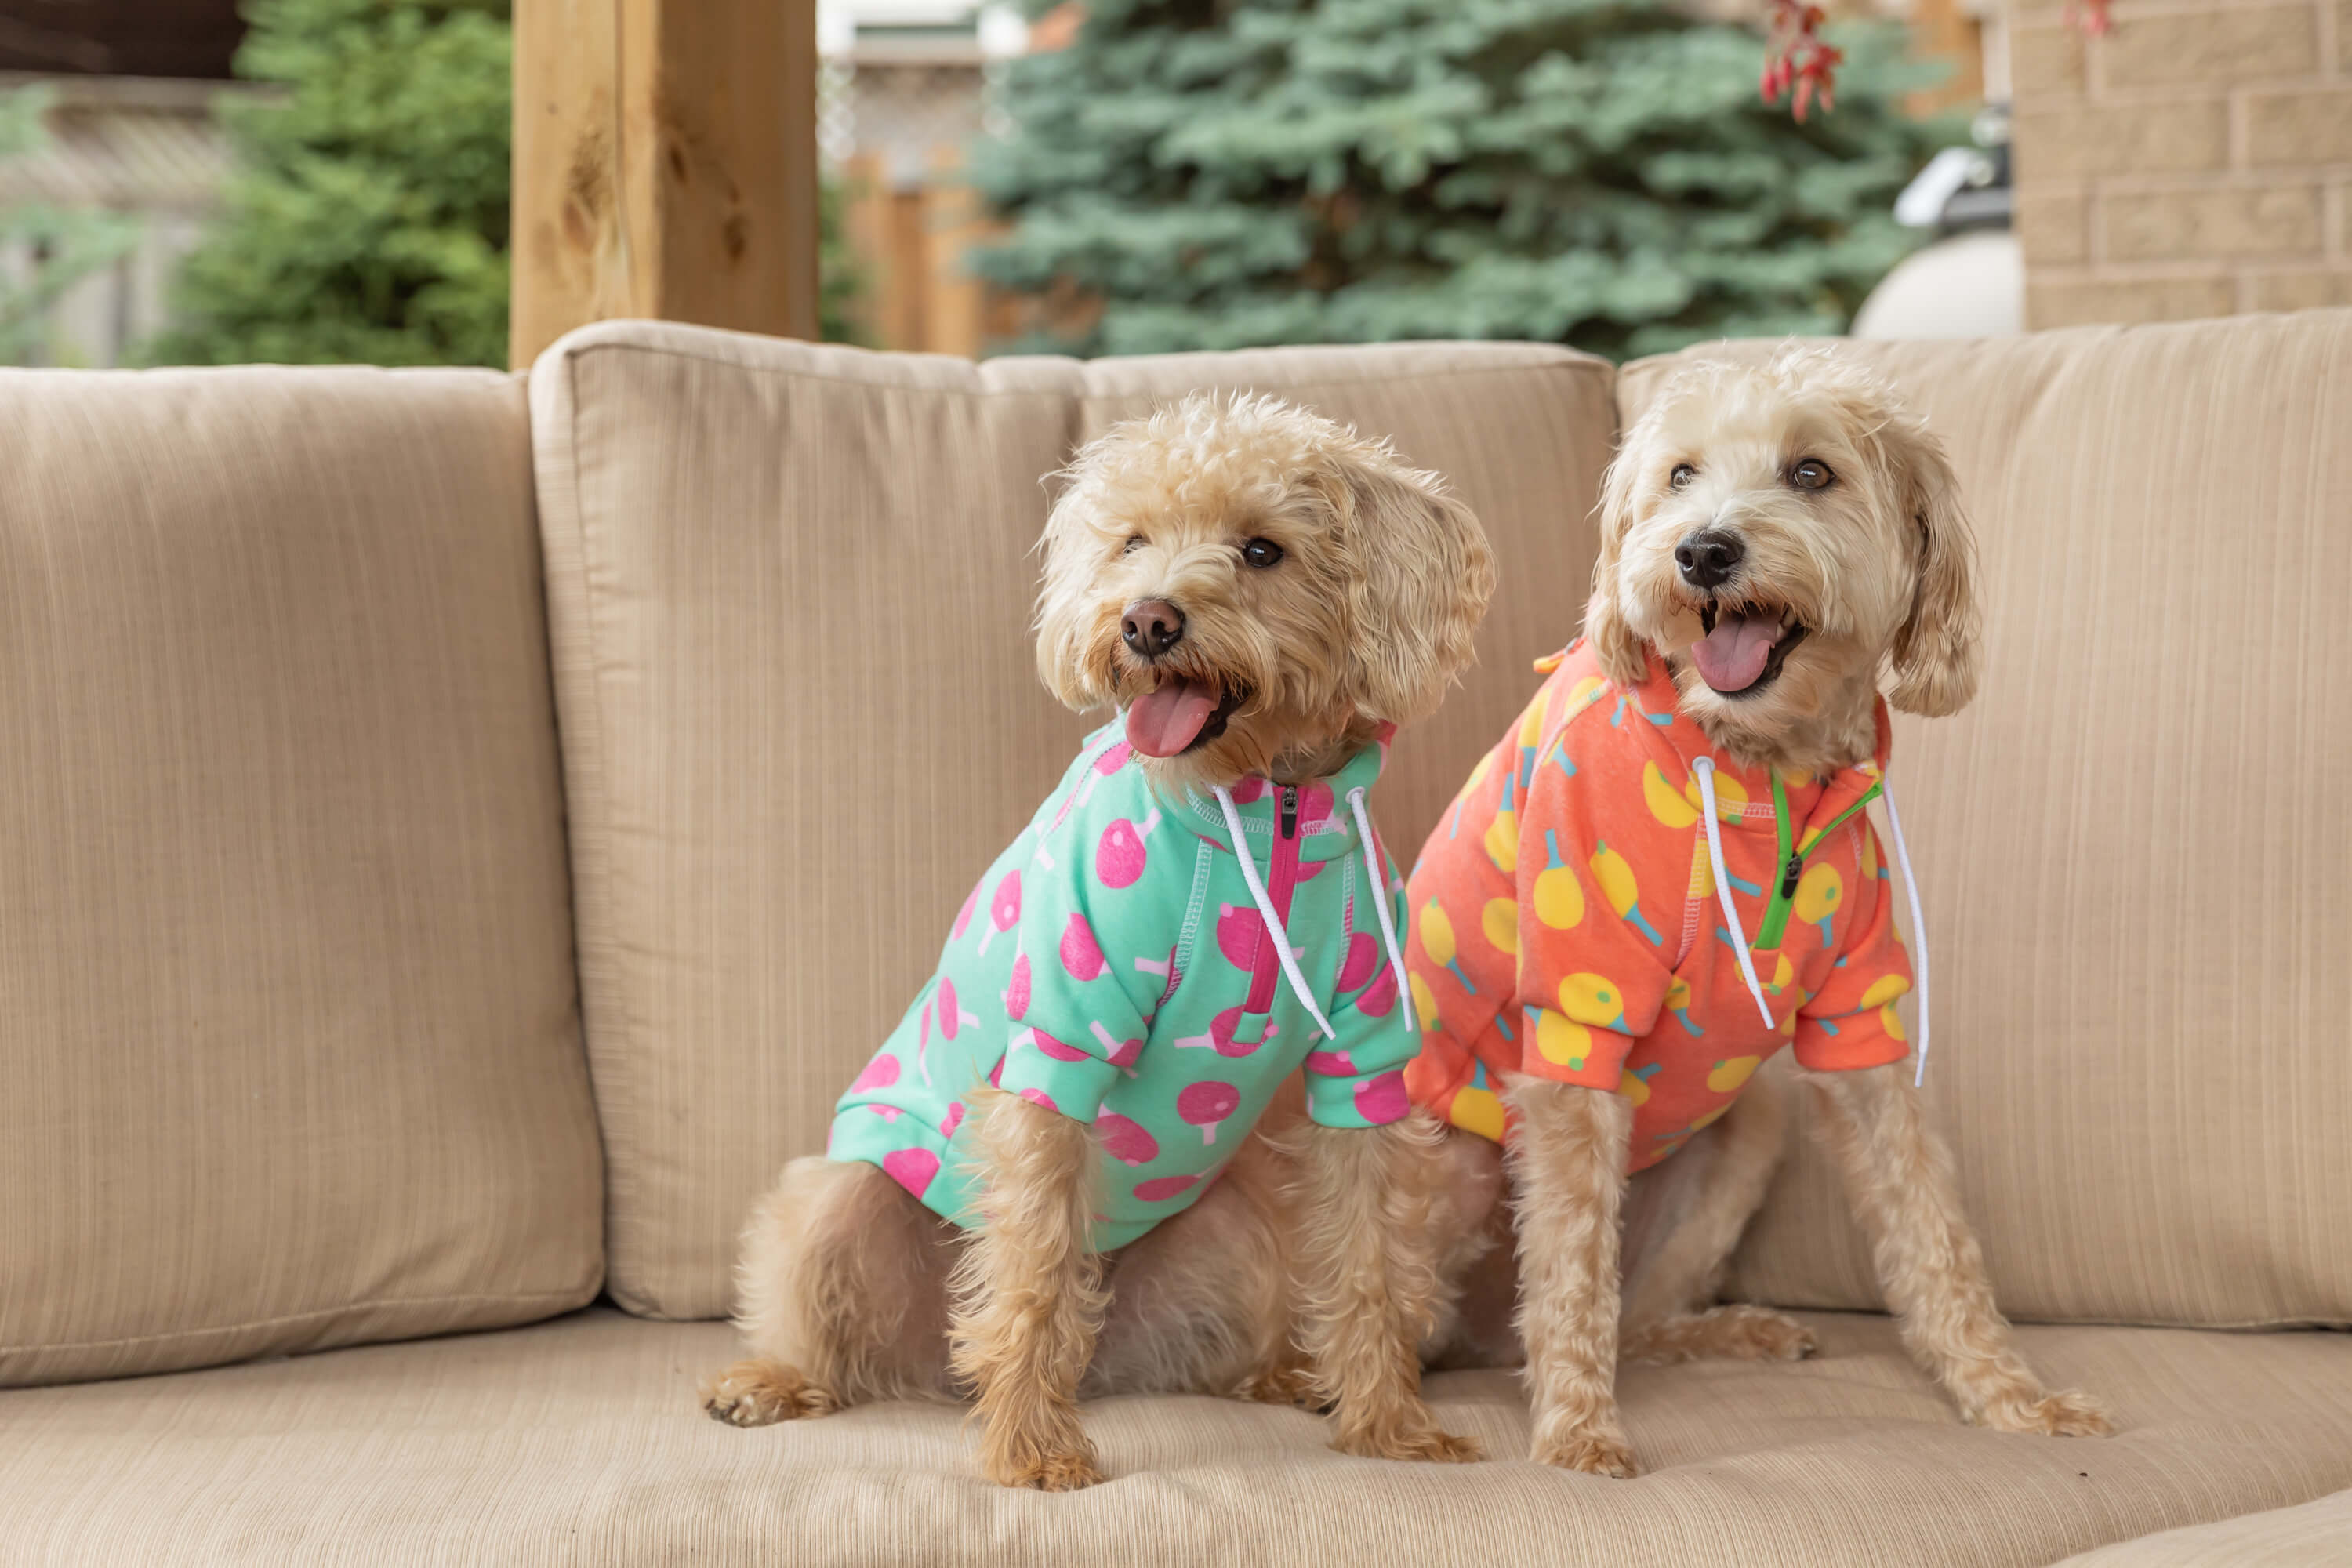 2 dogs in pjs on couch for commercial shoot